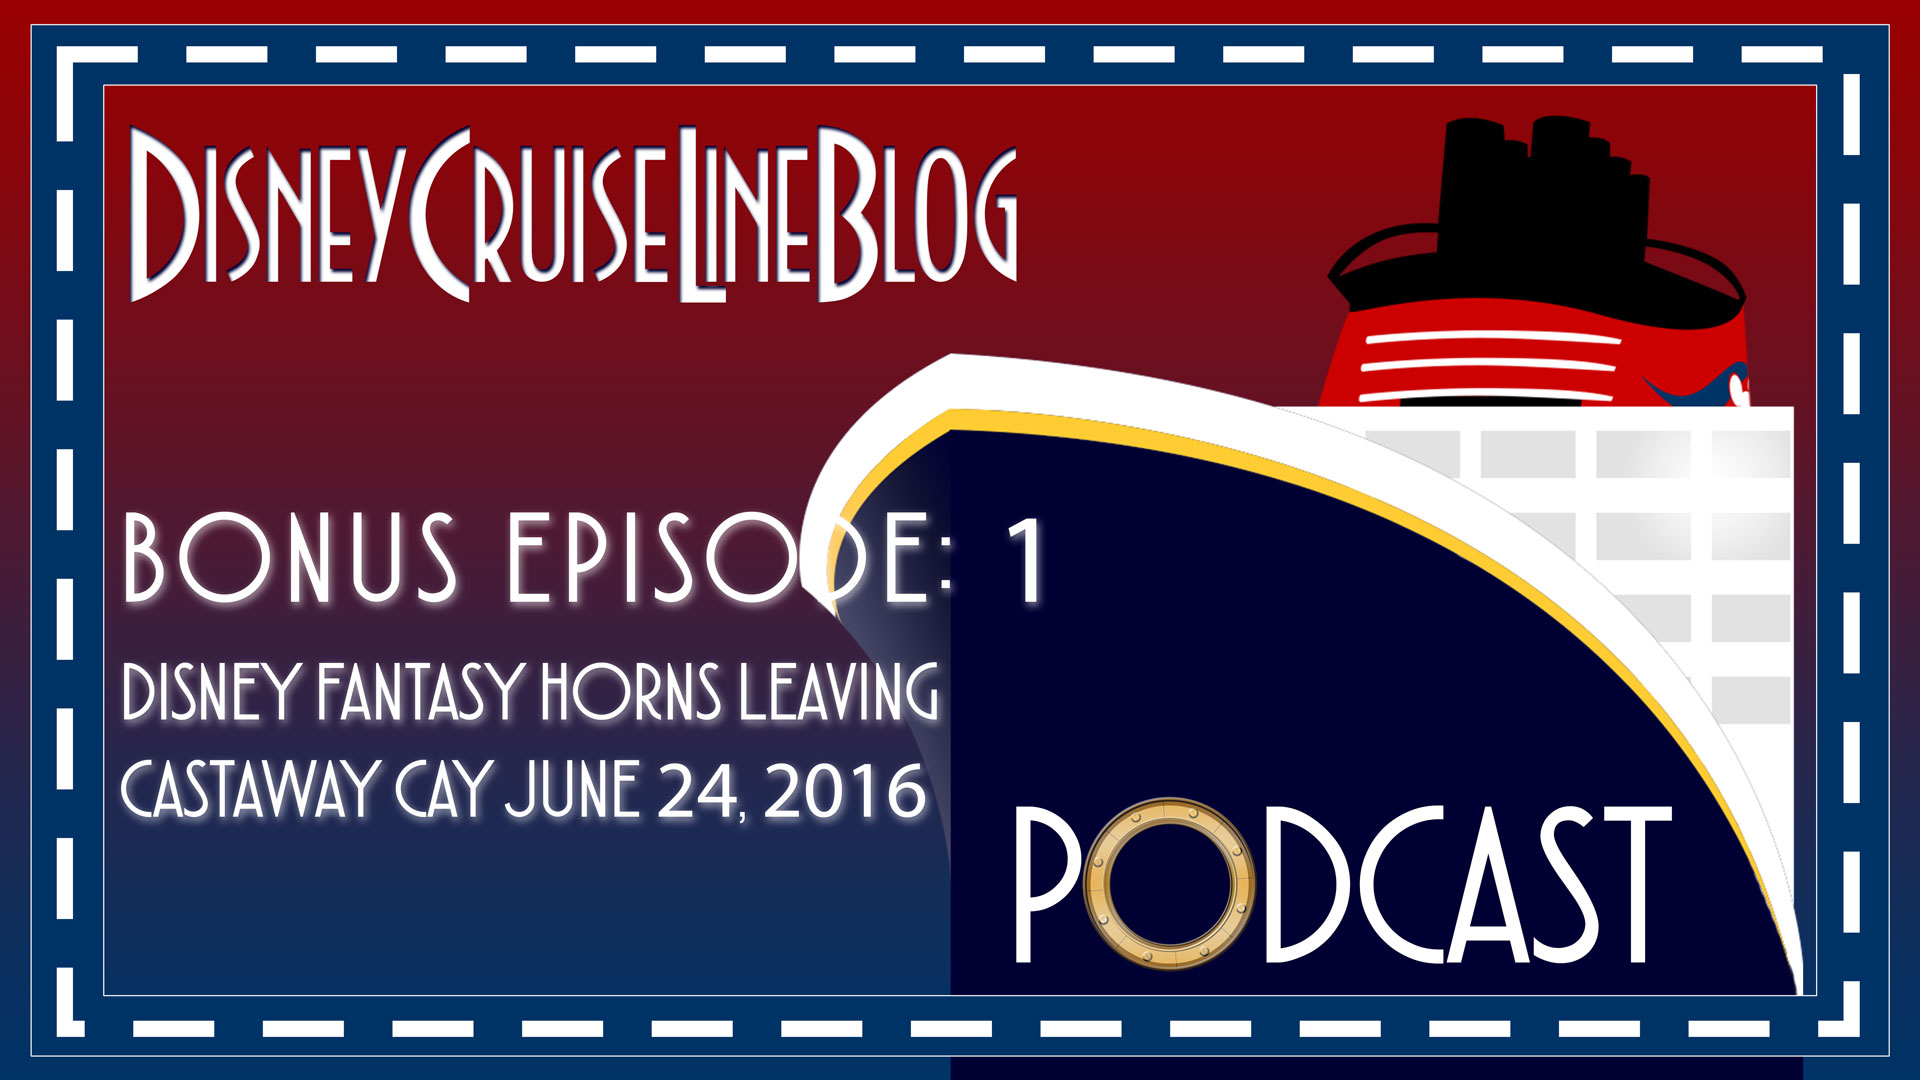 DCL Blog Podcast Bonus Episode 1 Disney Fantasy Horns